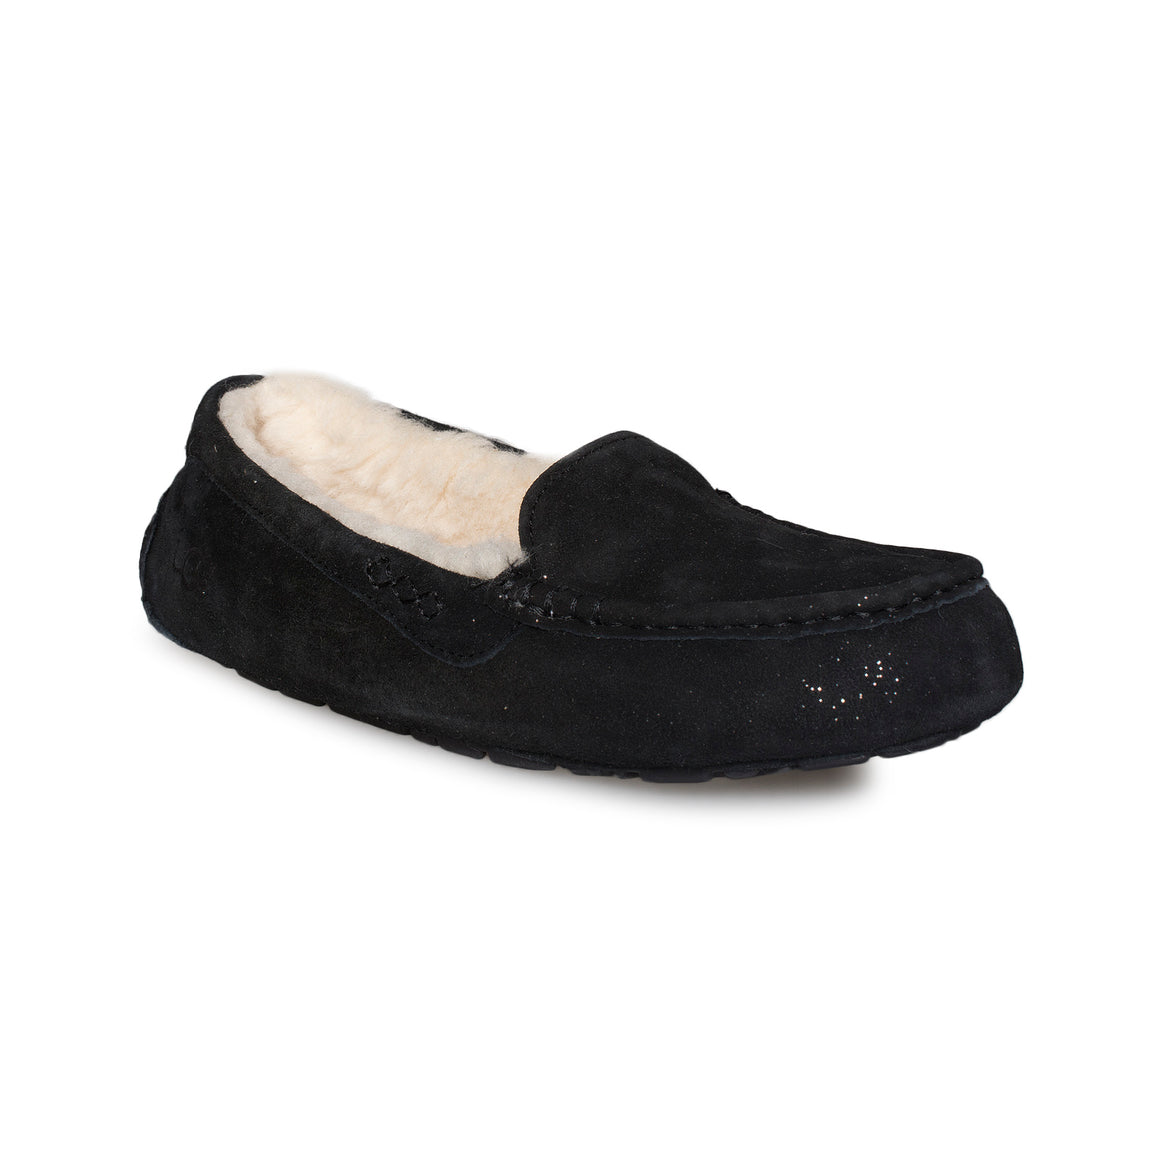 UGG Ansley Milky Way Black Slippers - Women's